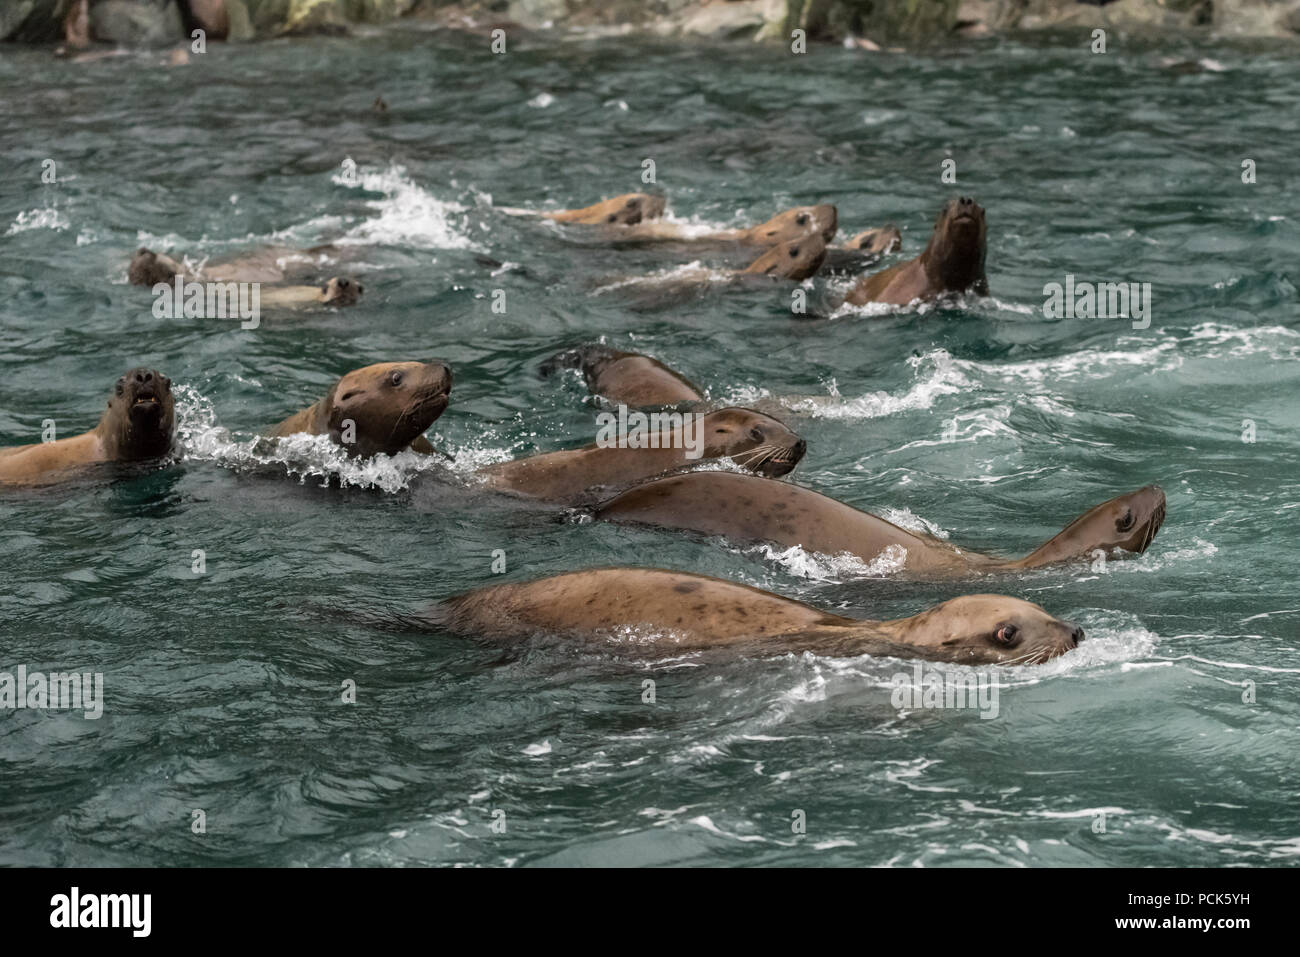 A group of Steller sea lions (Eumetopias jubatus) swimming in the ocean off the coast of Alaska, USA. - Stock Image